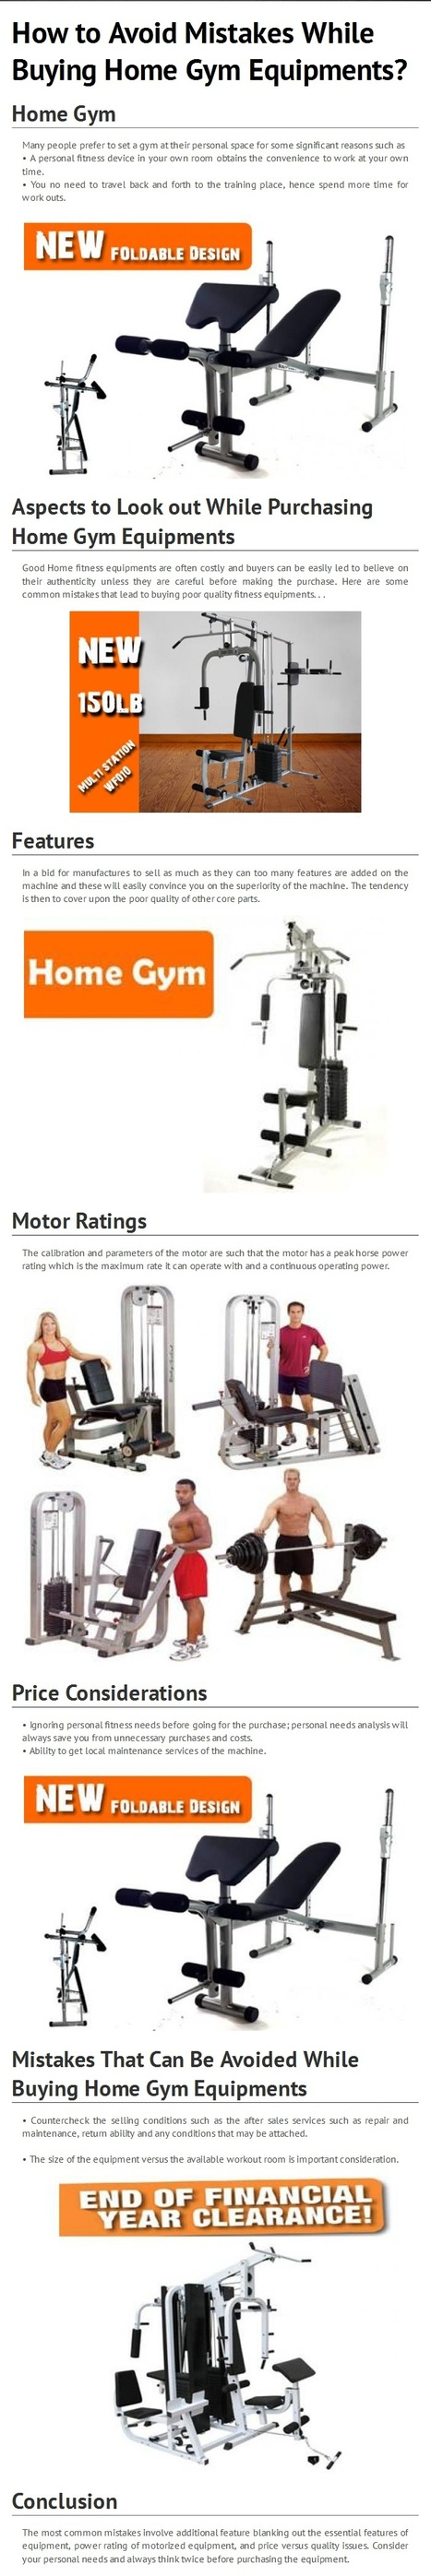 Tips While Buying Home Gym Equipments by www.worldfitness.com   worldfitness   Scoop.it